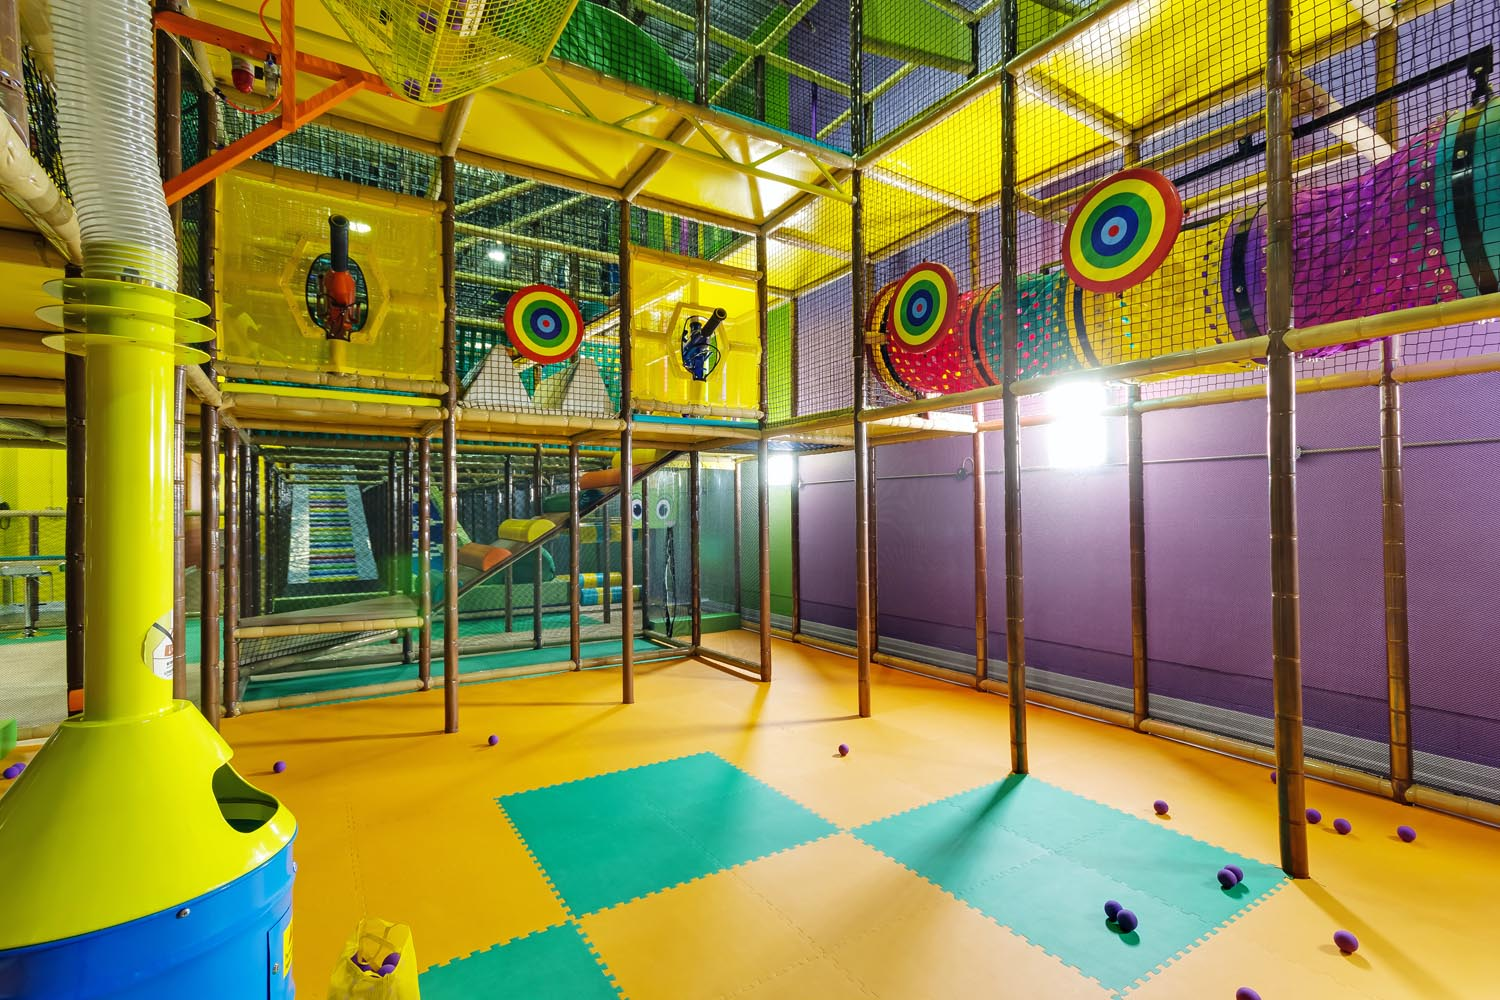 Playtopia Indoor Playground Toronto